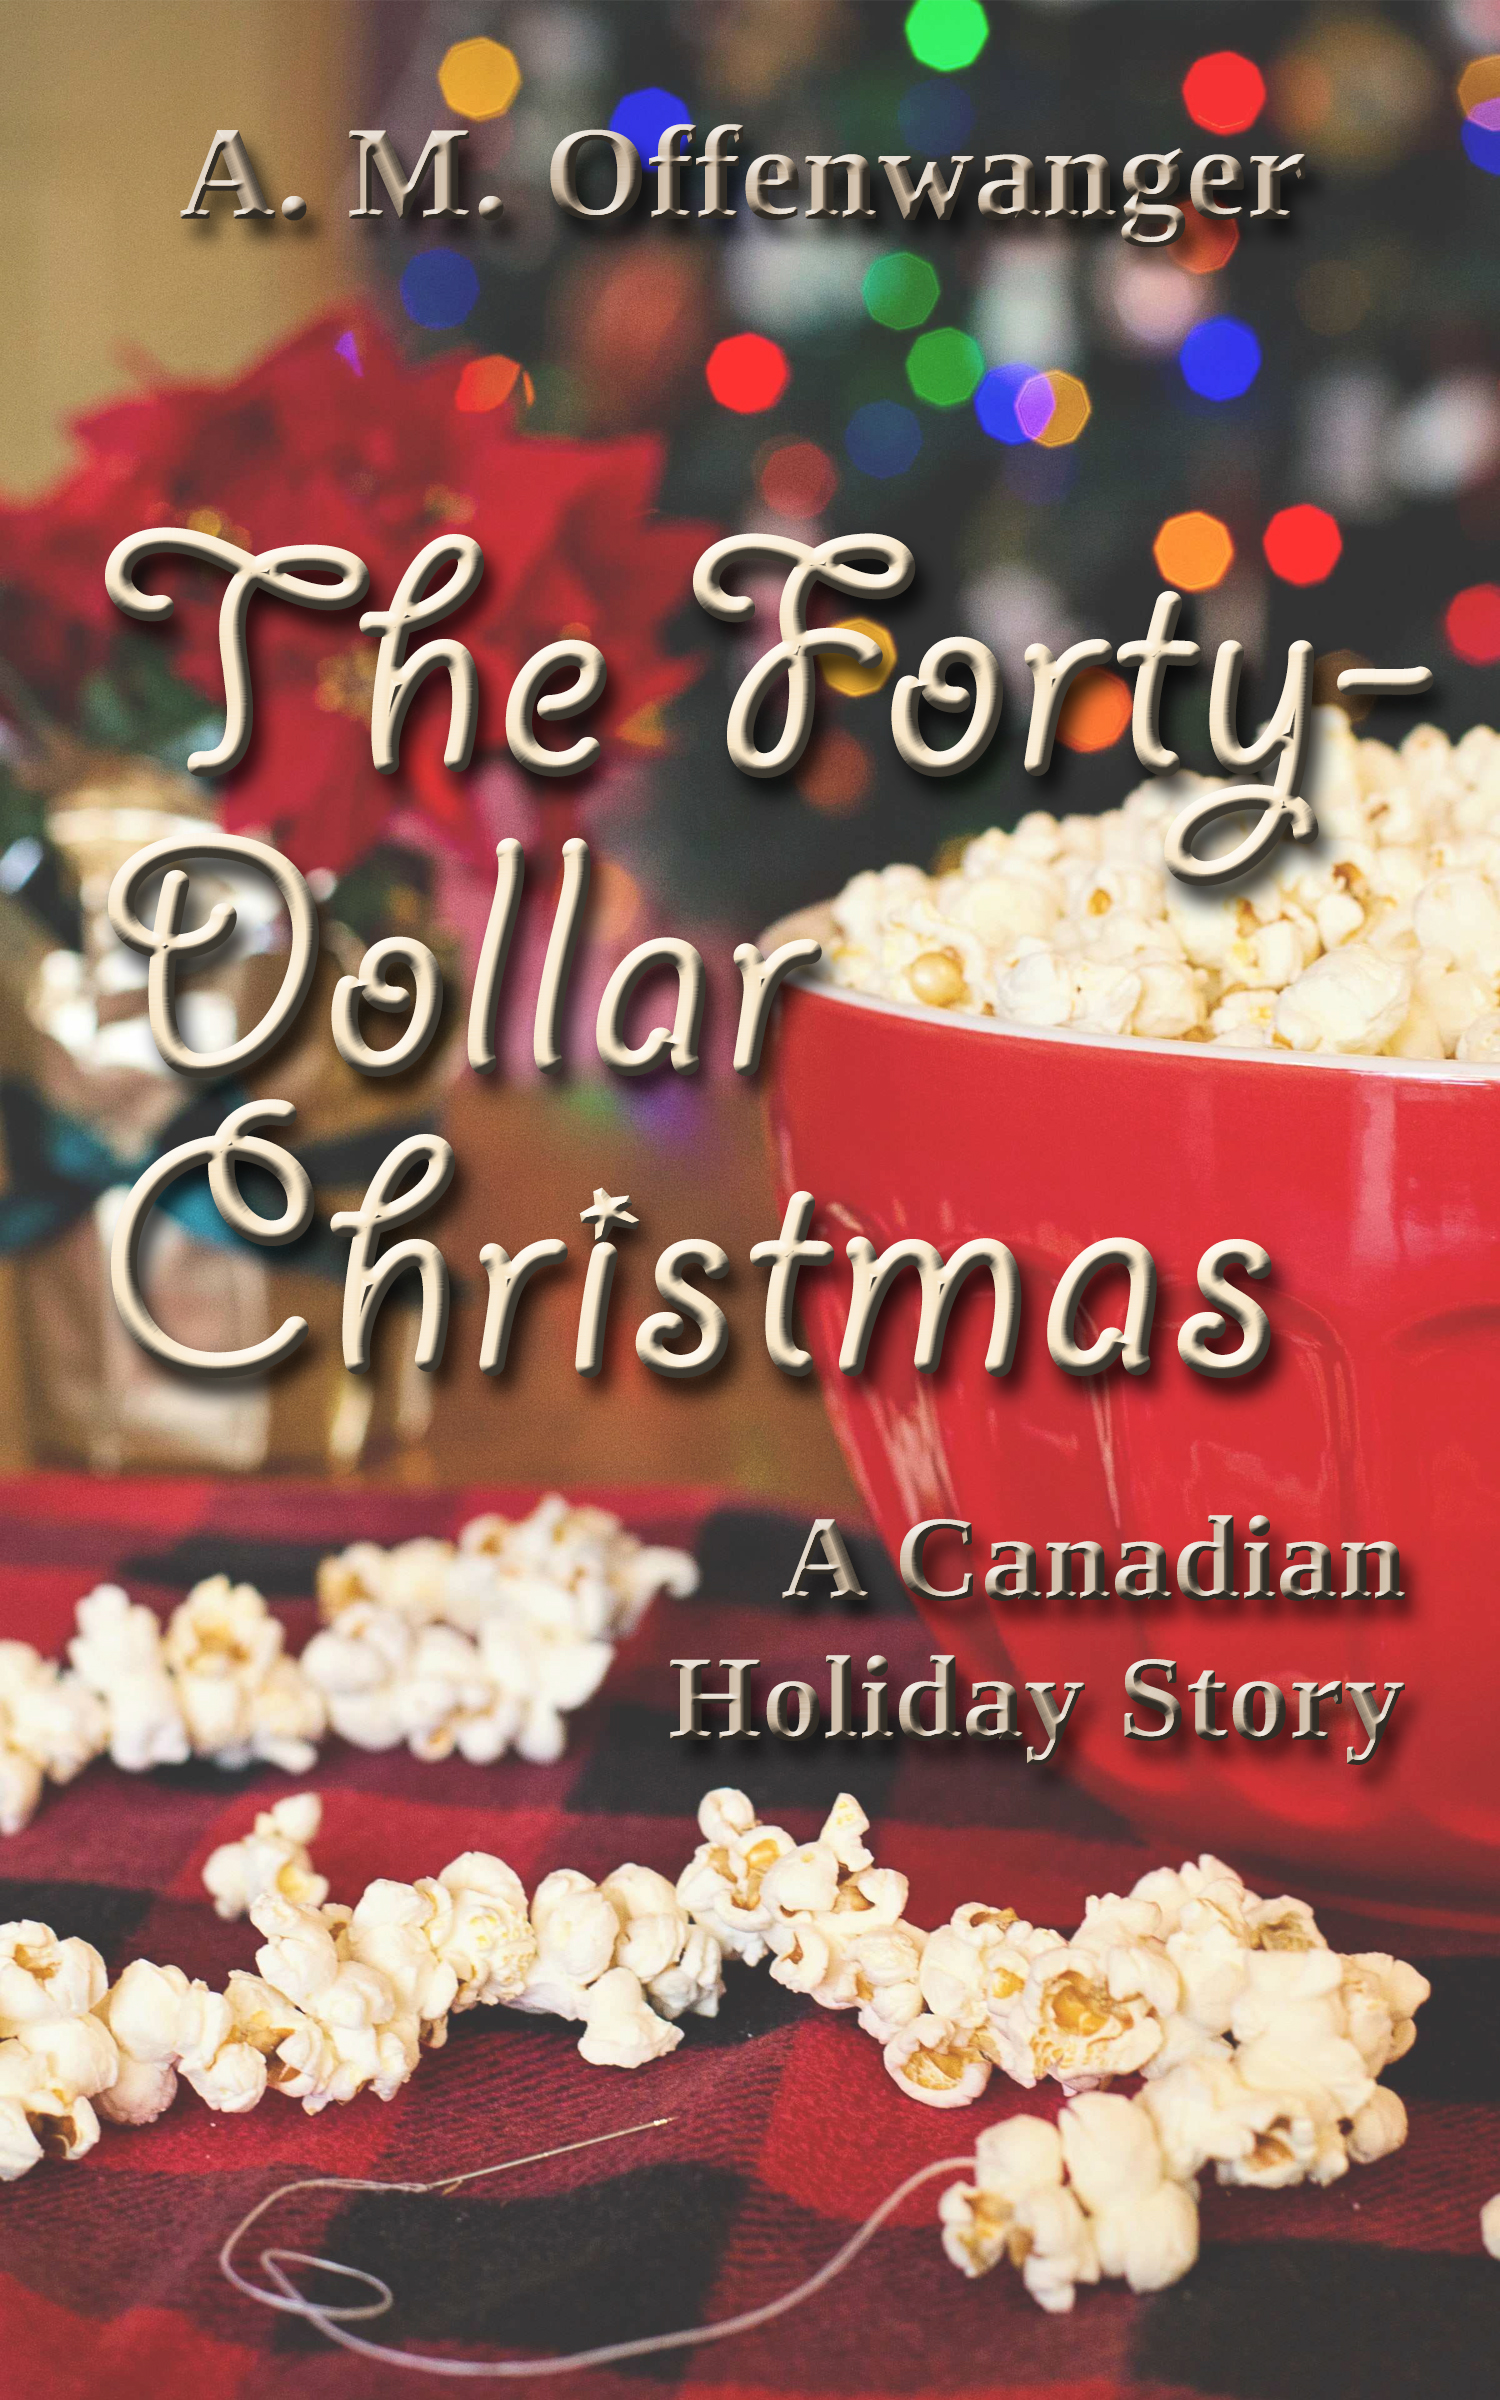 Forty-Dollar Christmas cover2